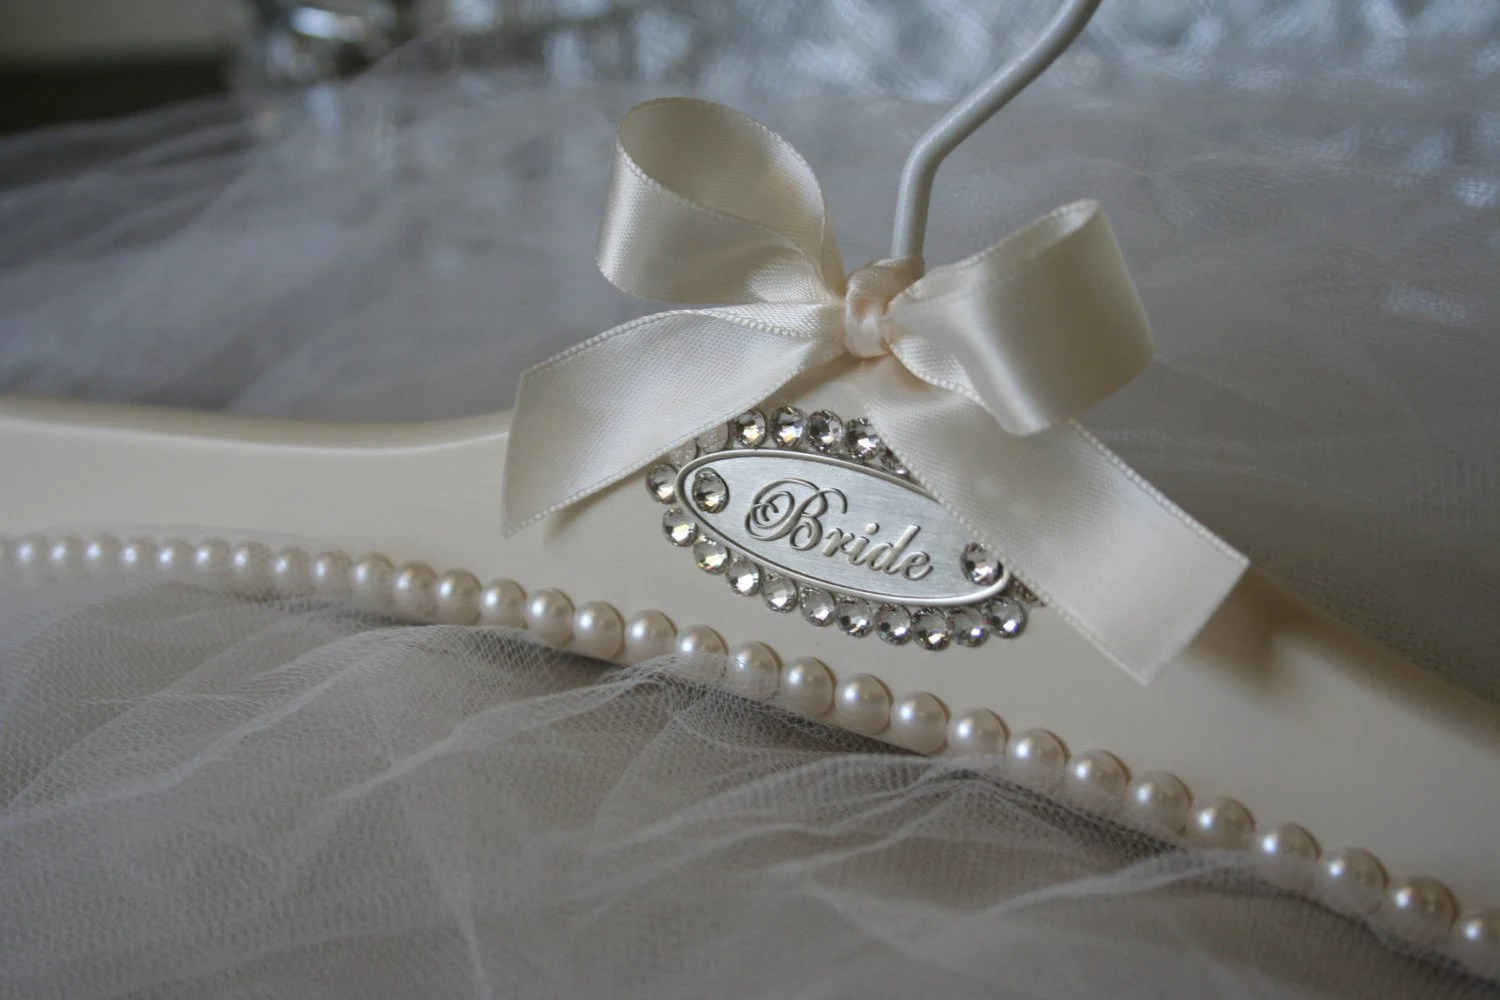 Wedding Gown Dress Bridal Hanger Custom Personalized Bride